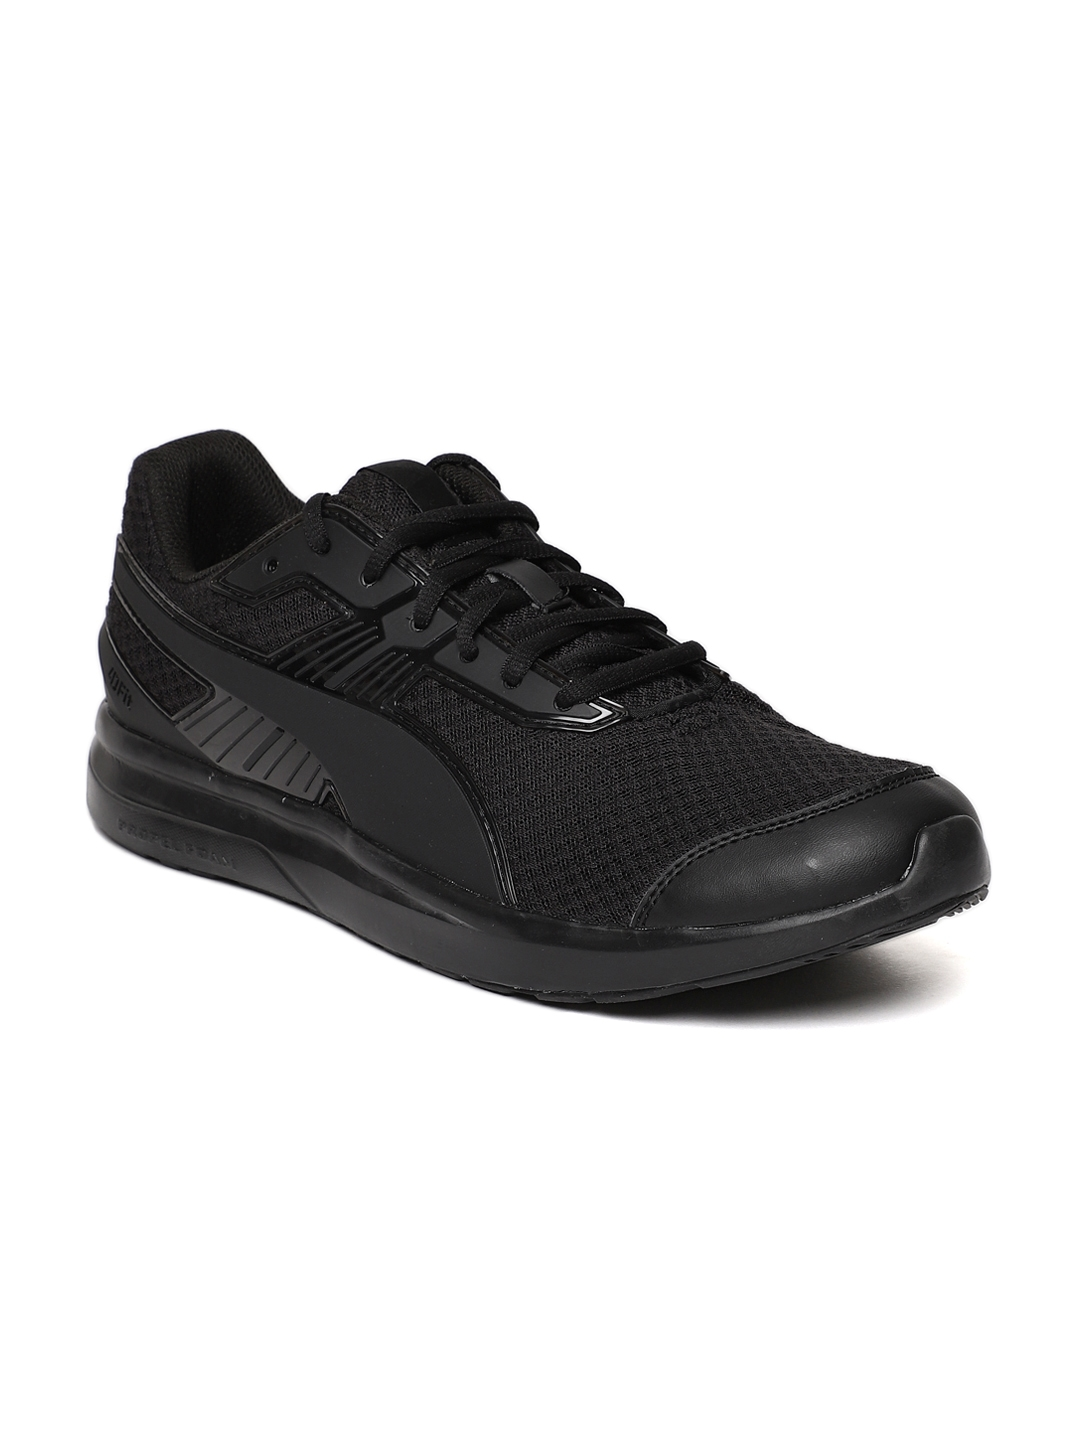 dd30b3a409dbb7 Buy Puma Men Black Escaper Pro Running Shoes - Sports Shoes for Men ...